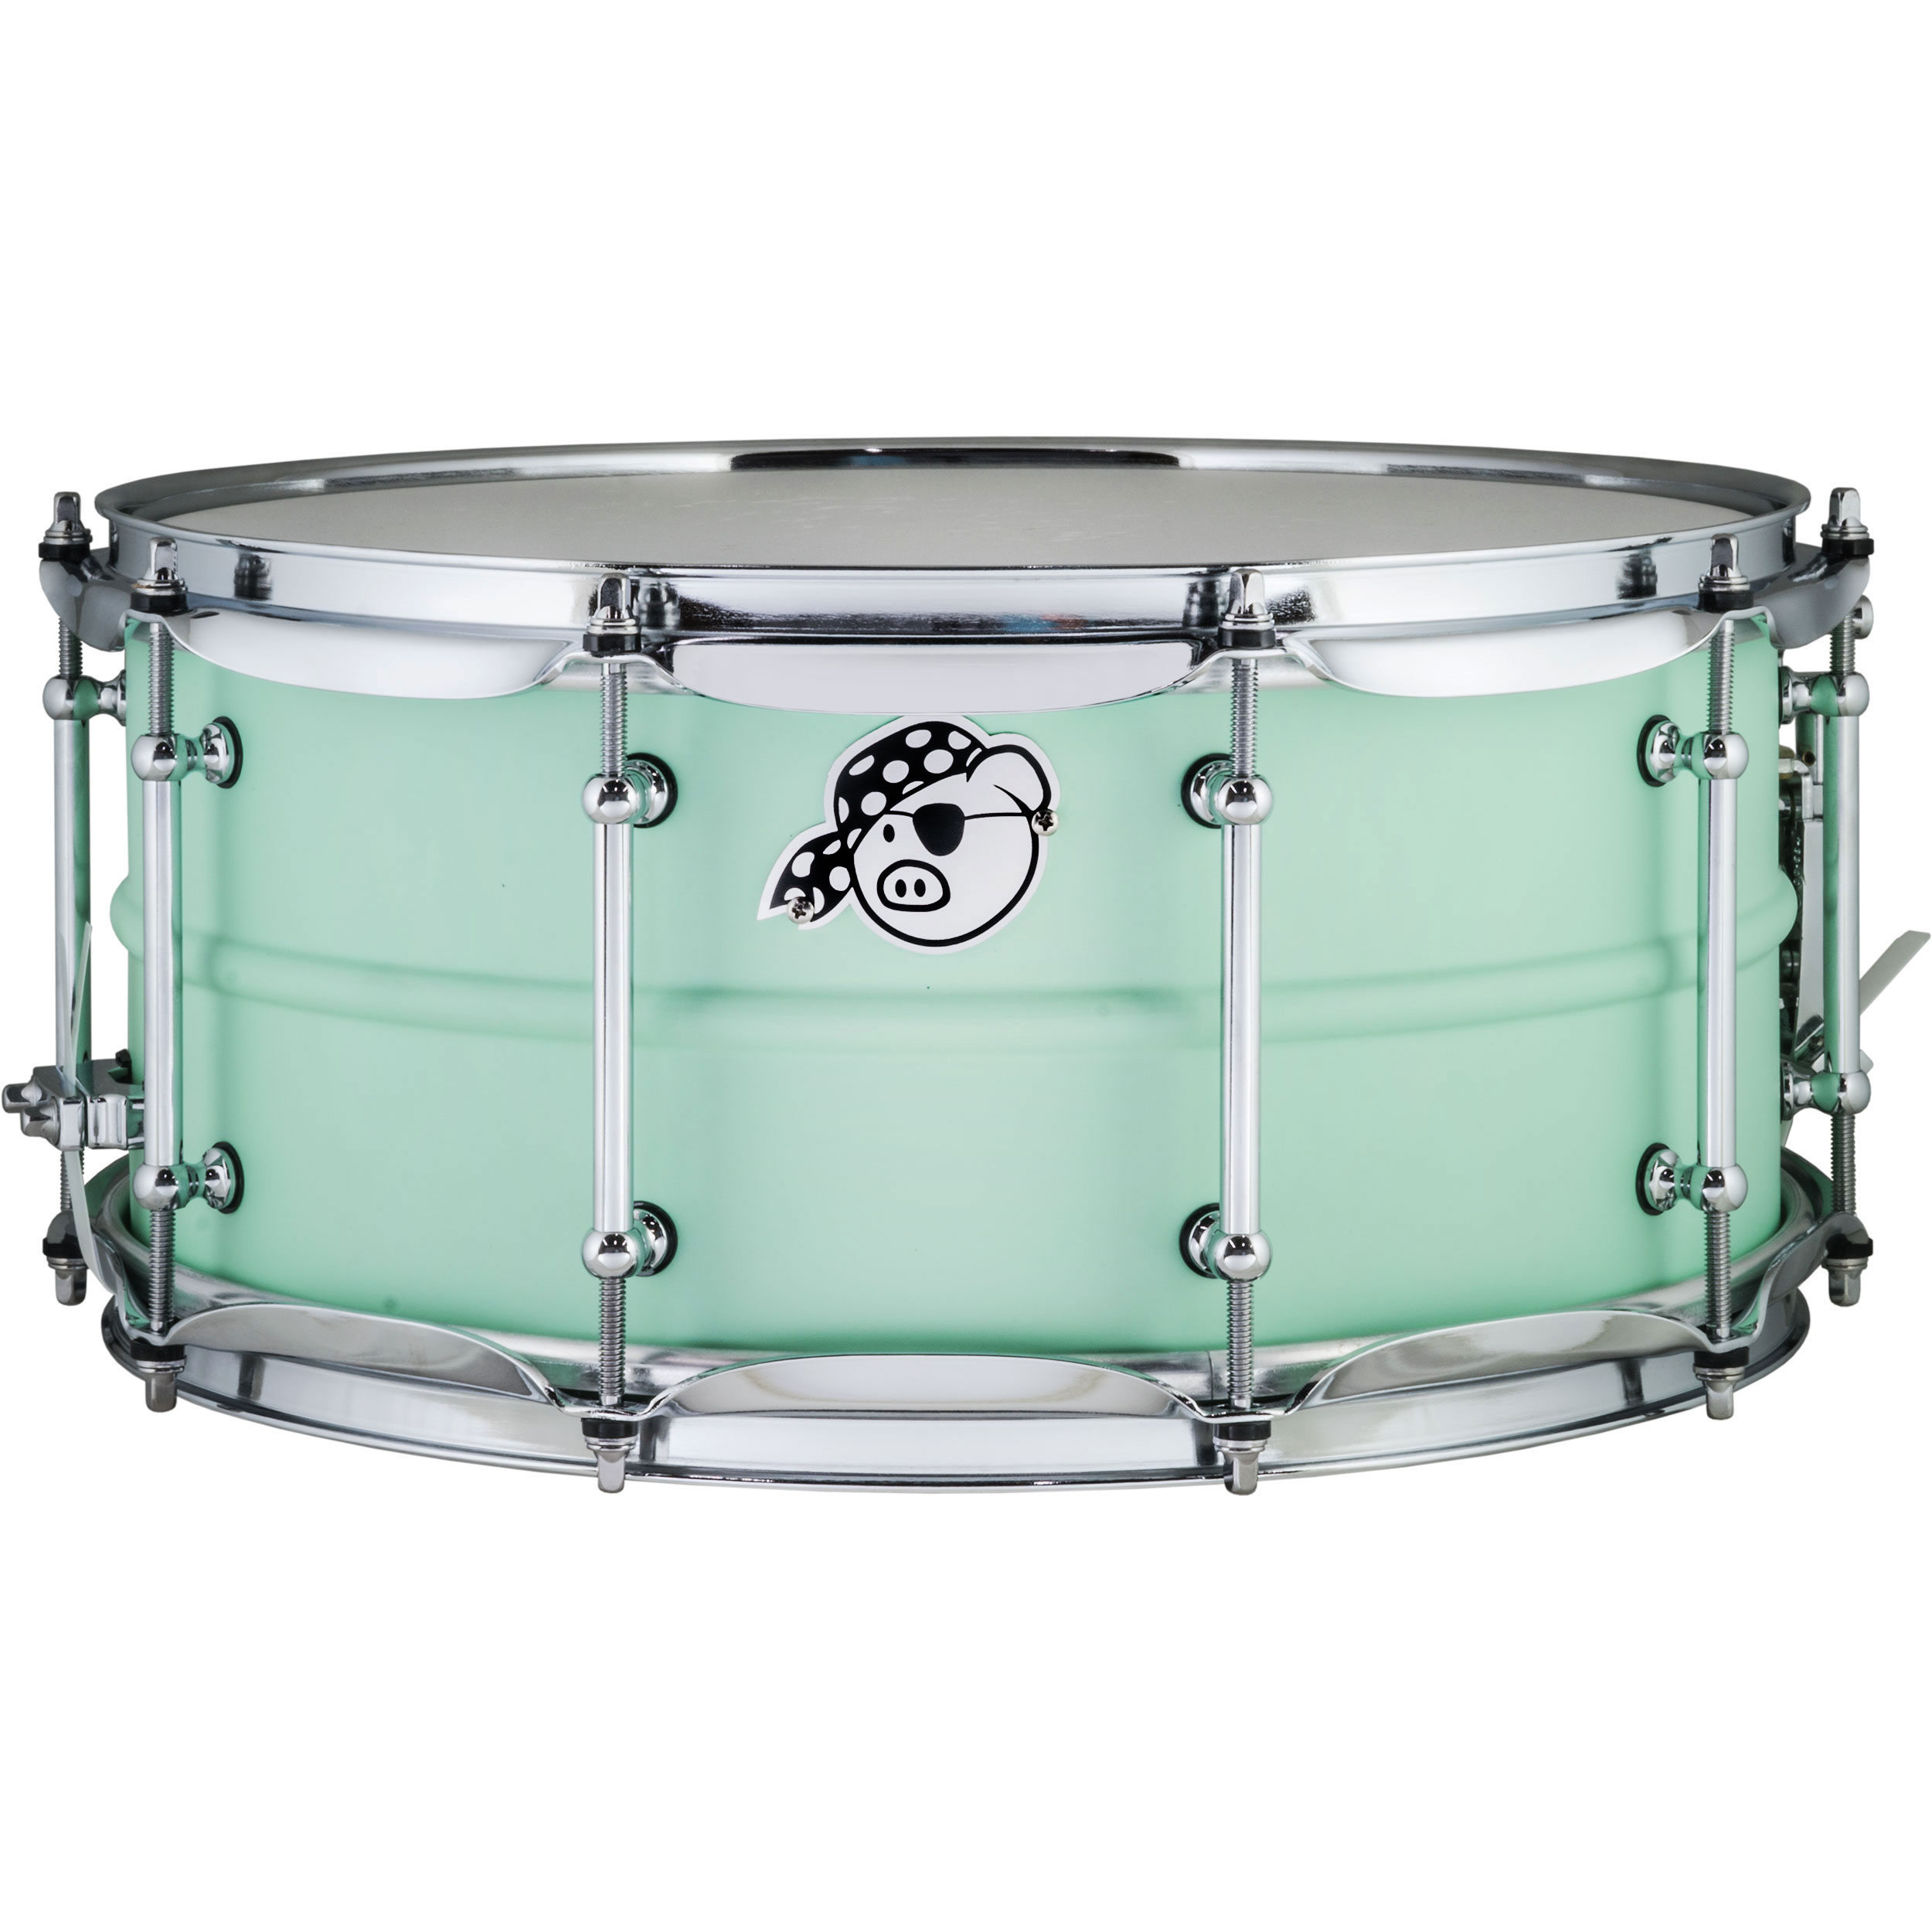 "Pork Pie Percussion 6.5"" x 14"" Aluminum Snare Drum in Sea Foam Green"